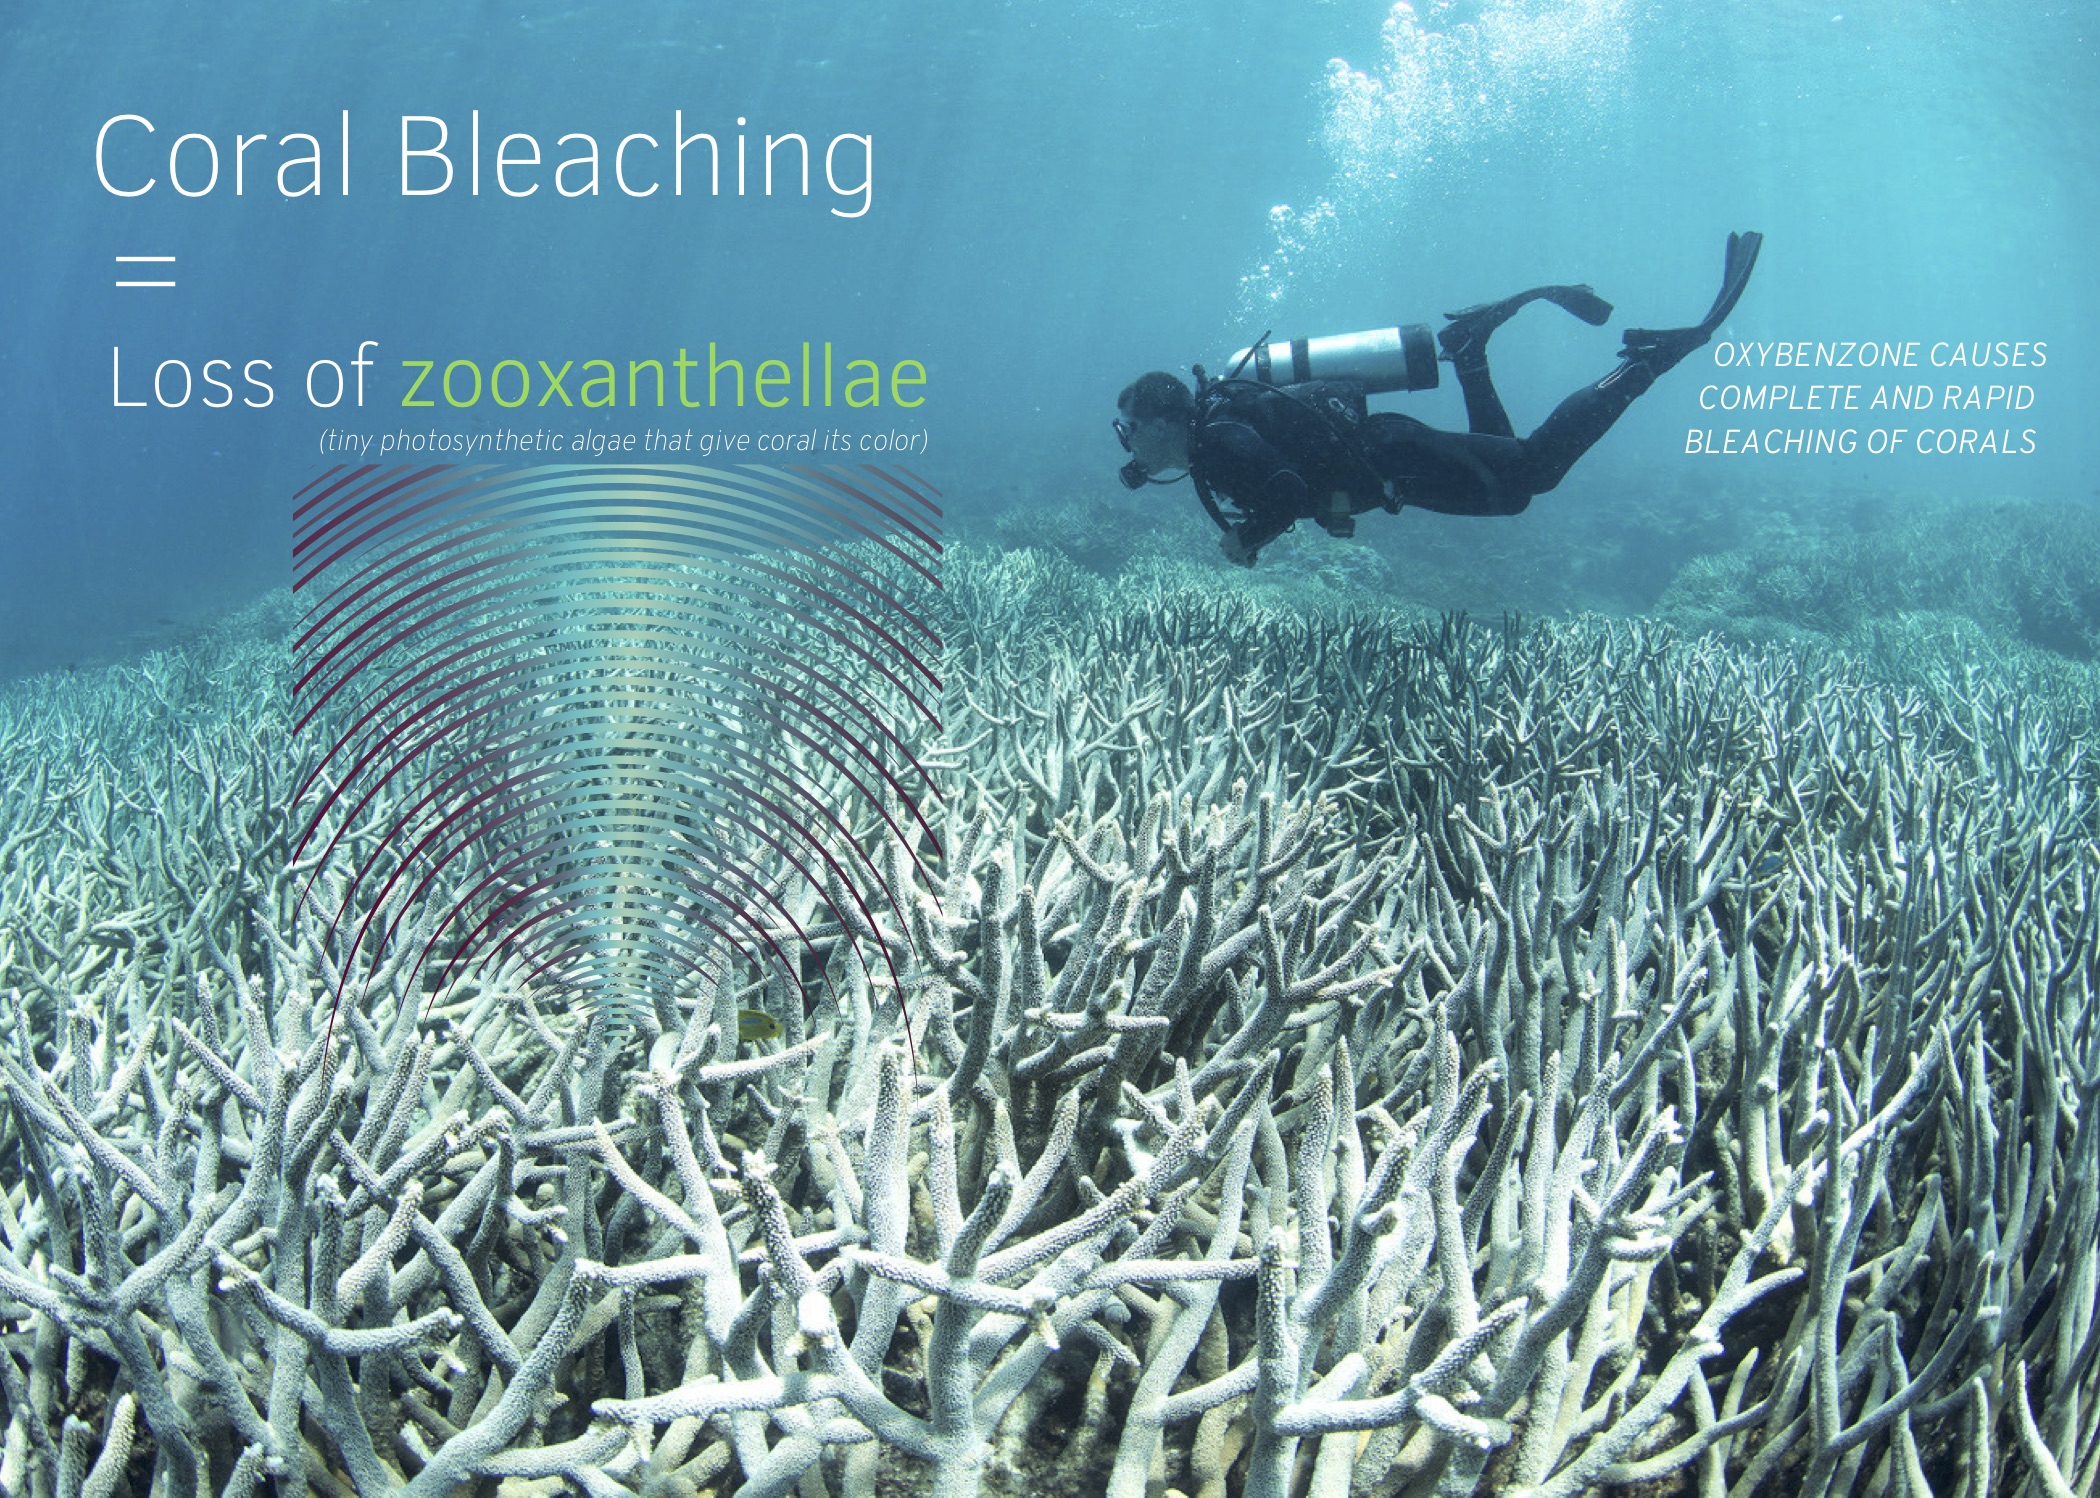 coral postcard-harken derm-coral bleaching-loss of zooxanthellae-front.jpg